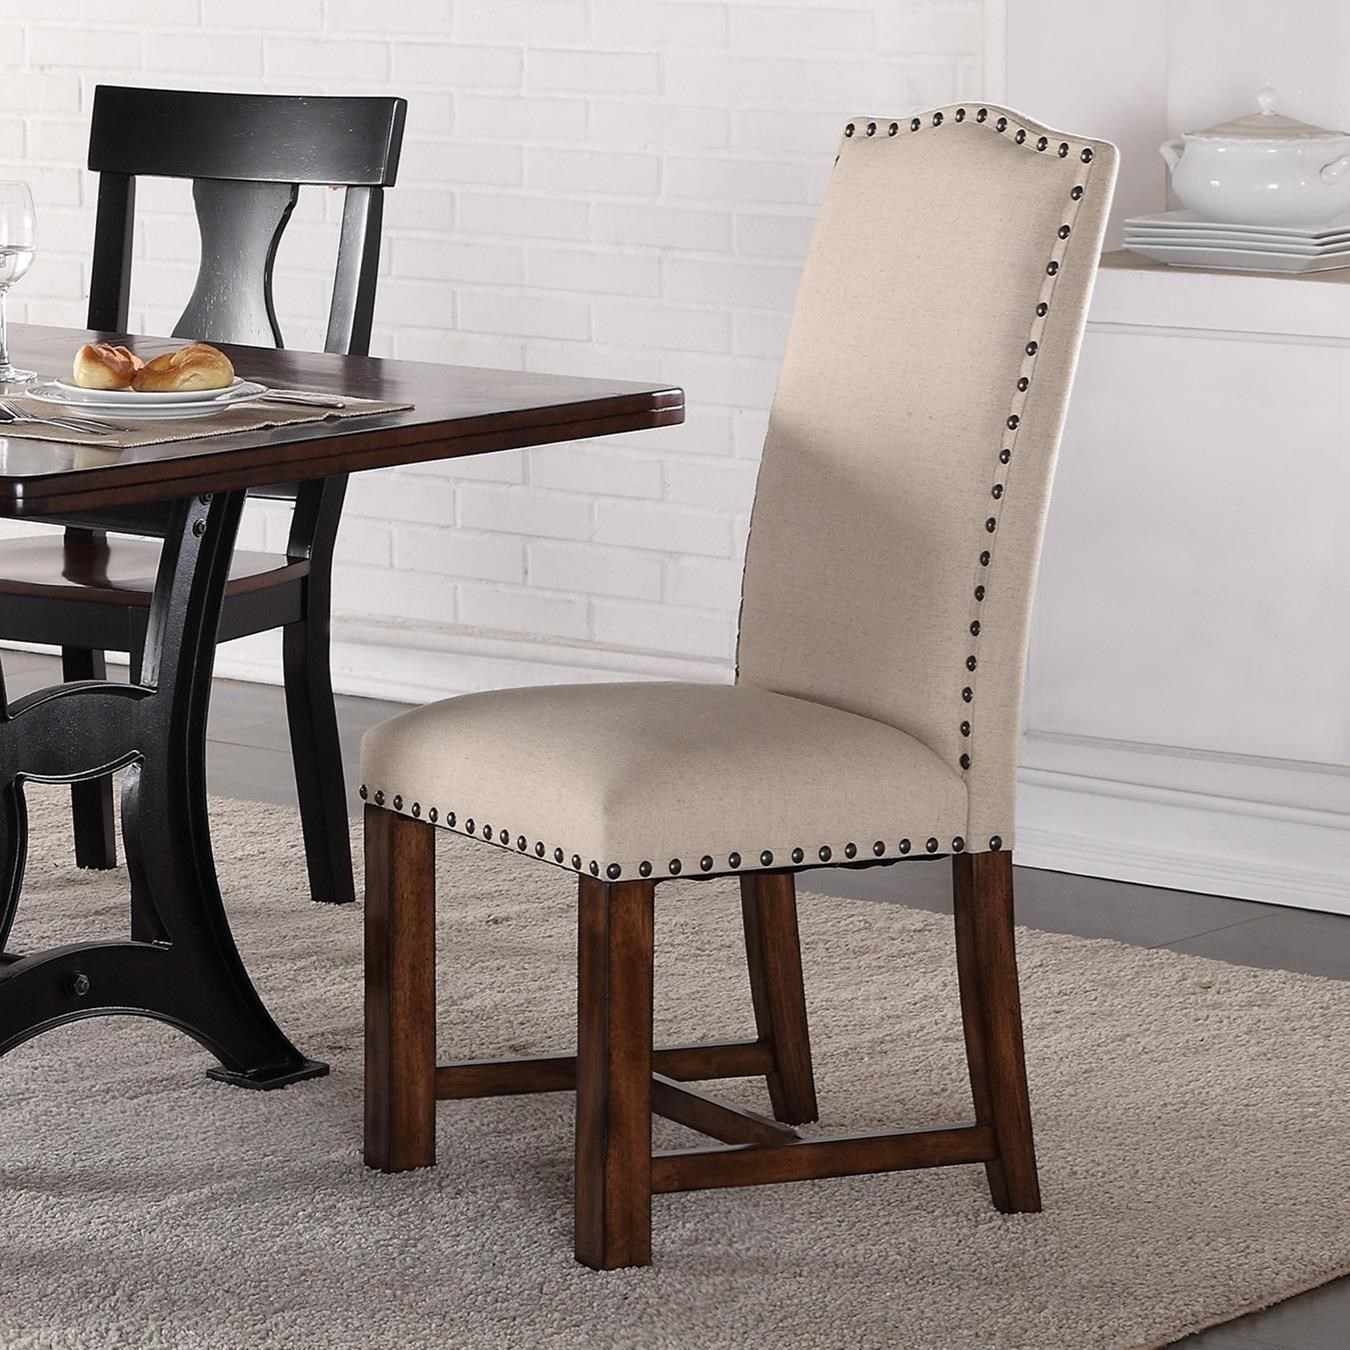 Perfect Dining Room Chairs With Nailhead Trim Crown Astor Upholstered Parson Chair  With Nailhead